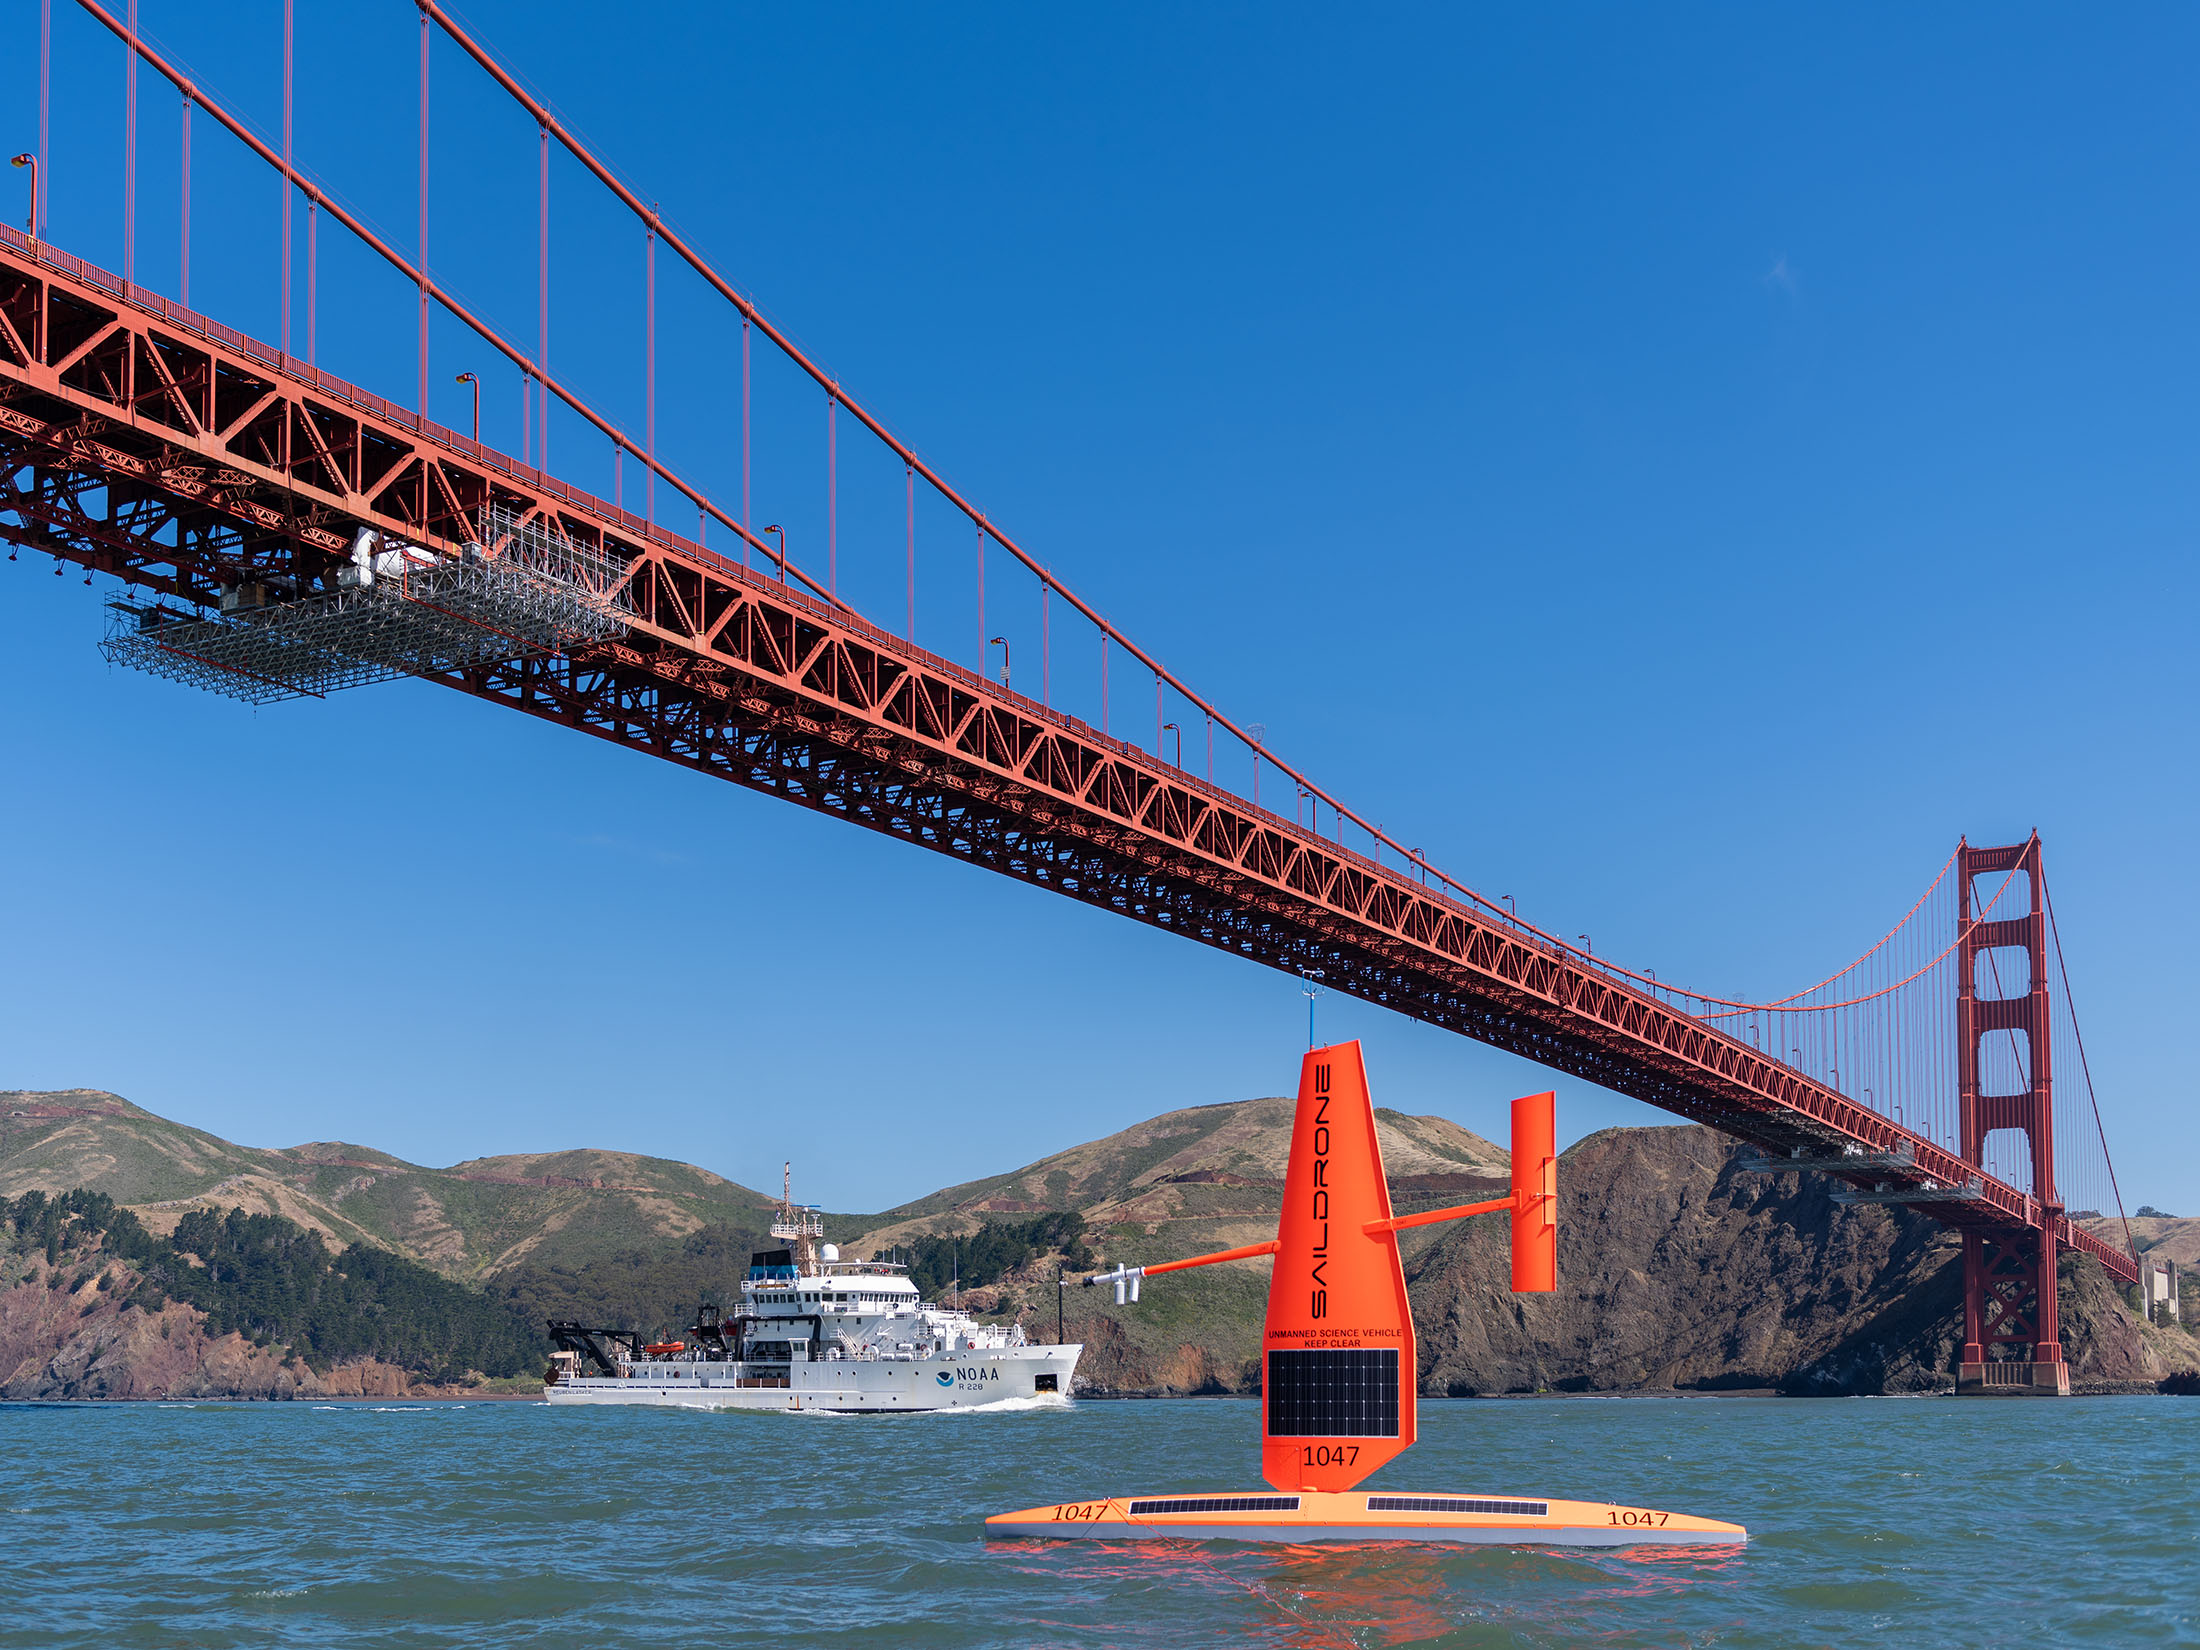 Saildrone USV and NOAA research vessel Reuben Lasker under Golden Gate Bridge